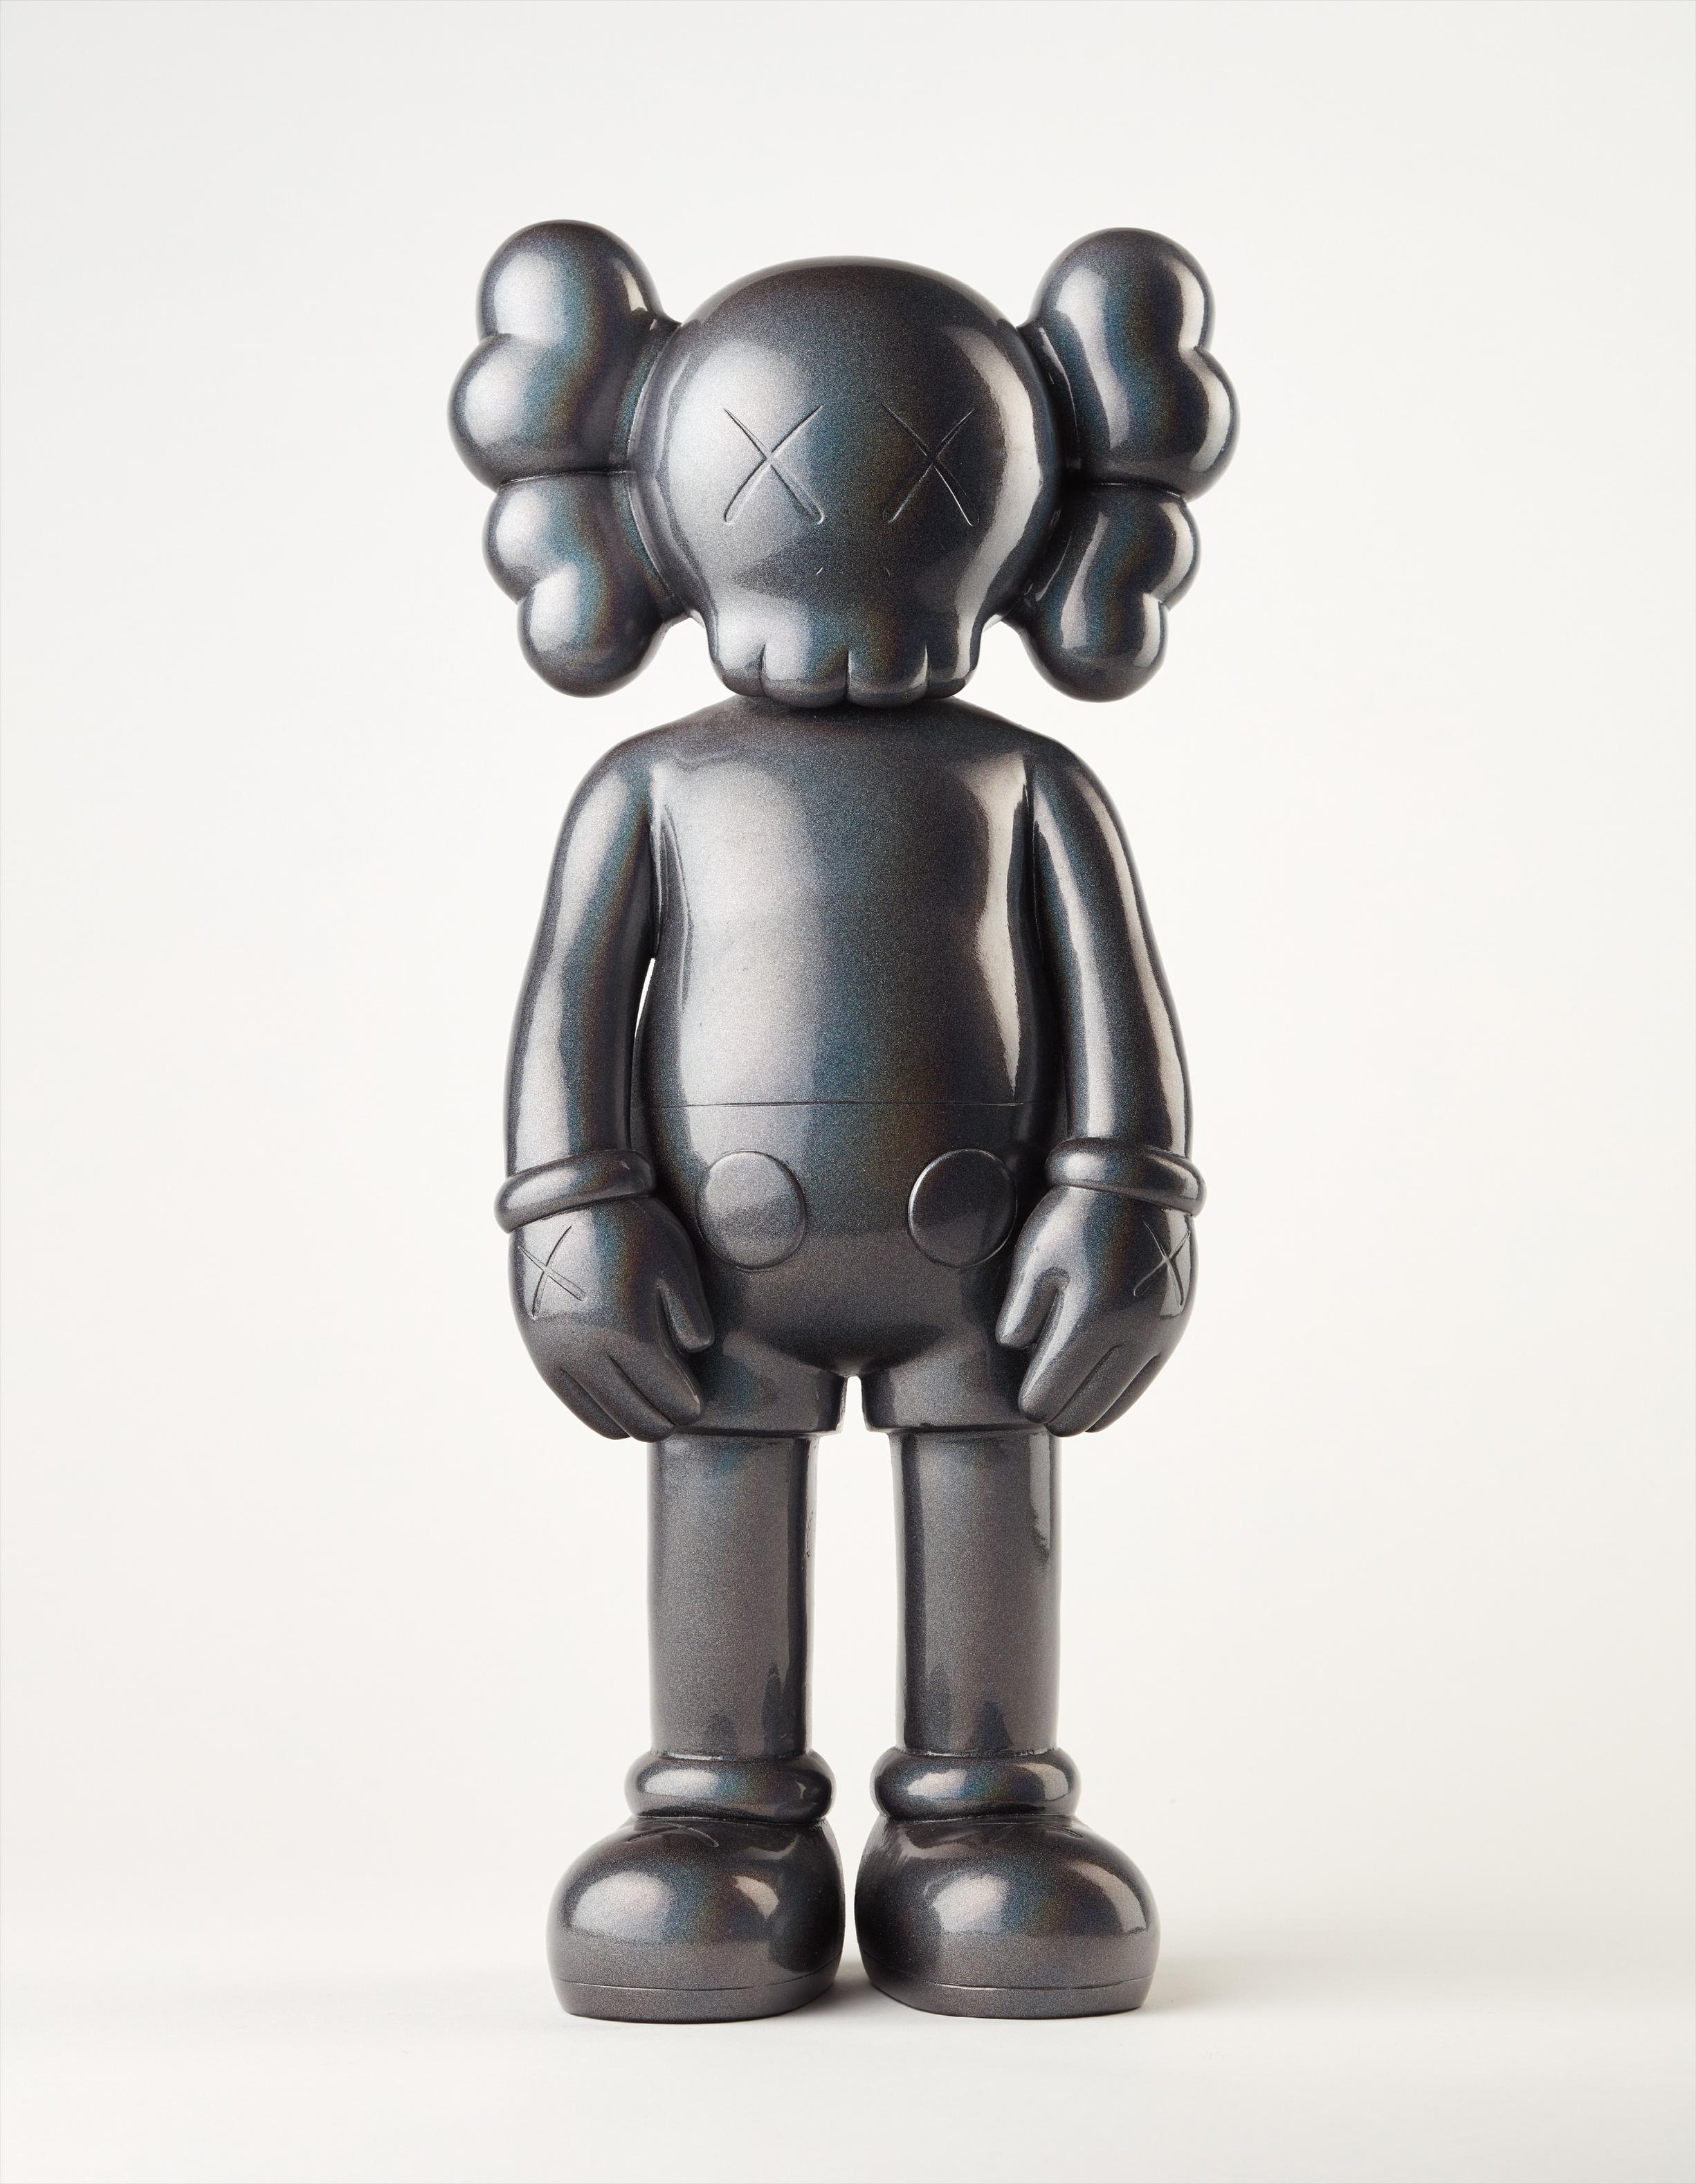 KAWS-(Five Years Later) Companion-2008